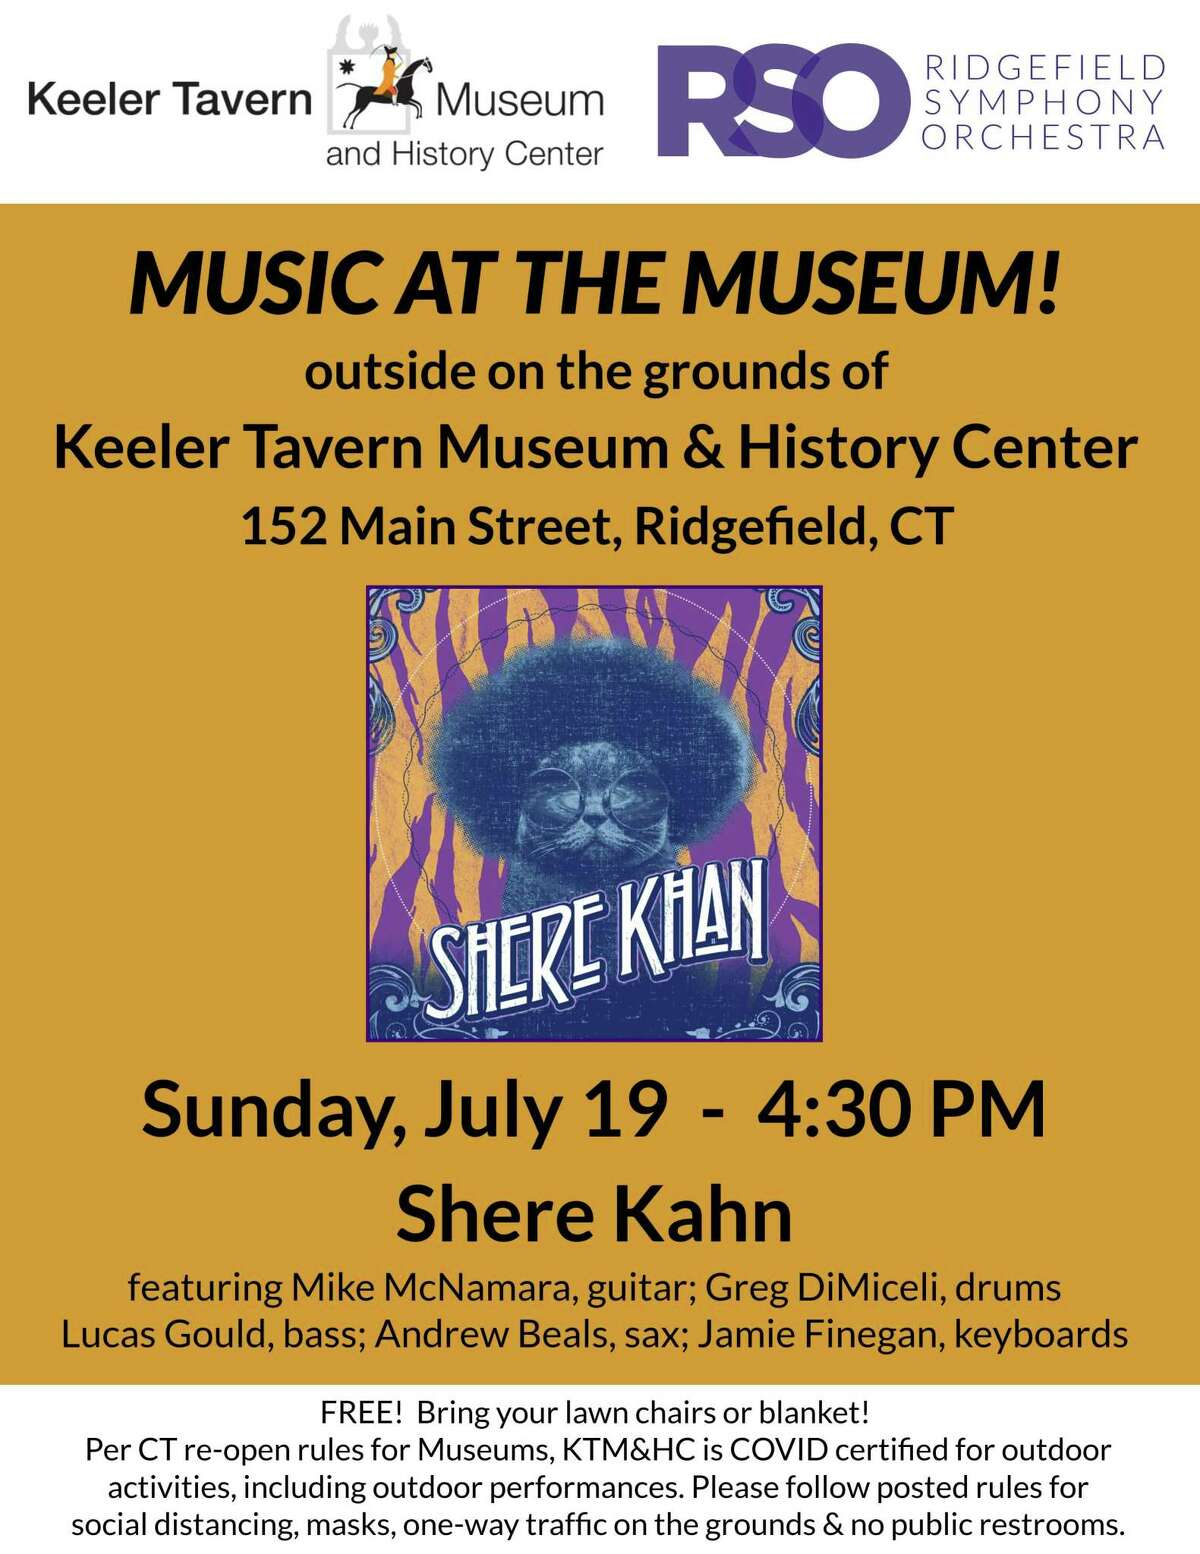 Keeler Tavern Museum & History Center (KTM&C) and Ridgefield Symphony Orchestra (RSO) present Music at the Museum, a free outdoor summer concert series starting Sunday, July 19, at 4:30 p.m.